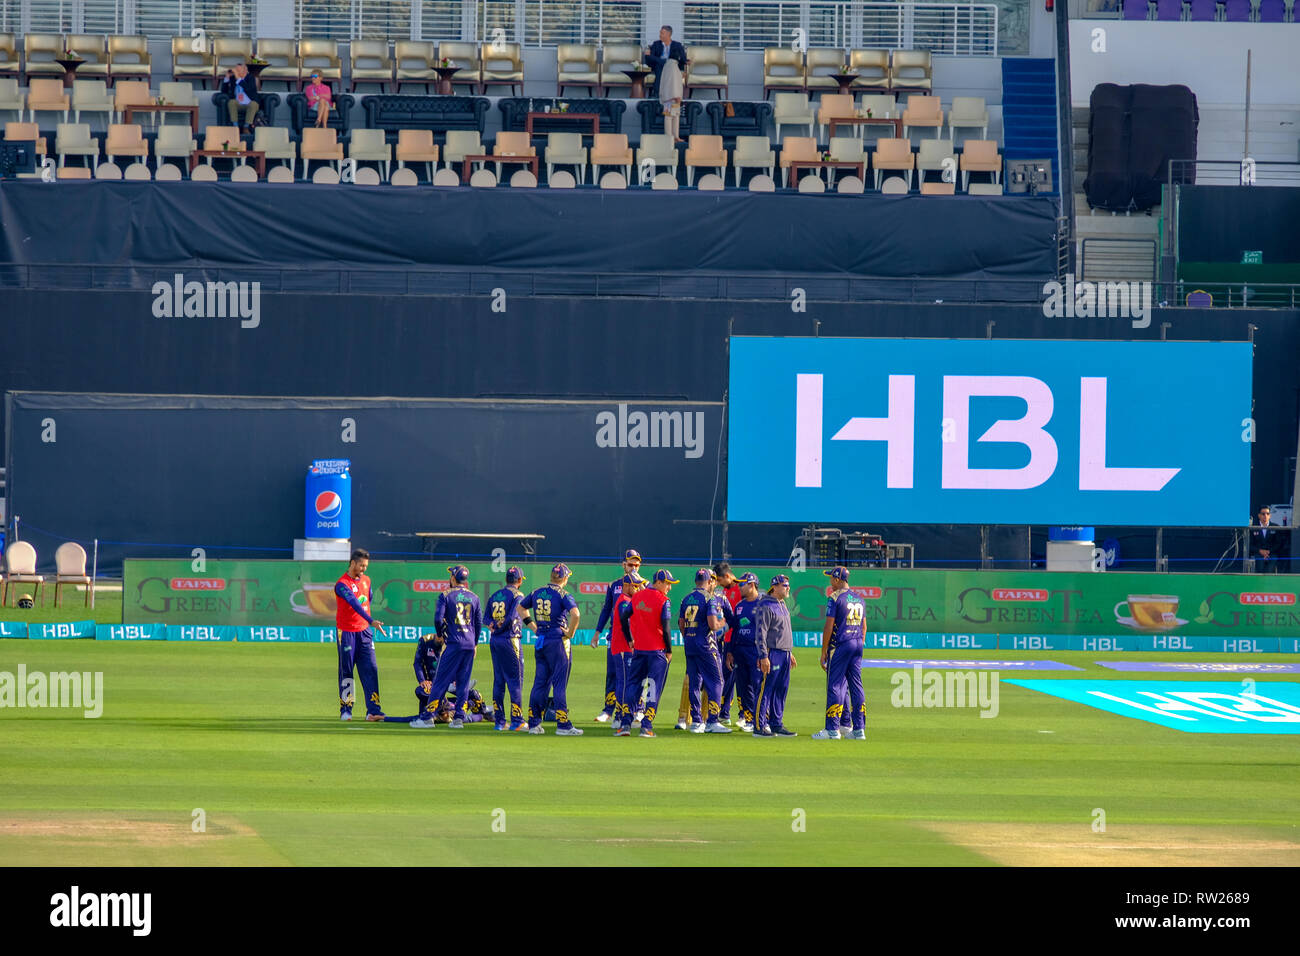 Abu Dhabi, UAE. 4th Mar 2019.  Pakistan Super League 2019/ First ever PSL 2019 Cricket matches are being held in Sheikh Zayed Cricket Stadium Abu Dhabi. Credit: Fahd Khan / Live News Alamy - Stock Image